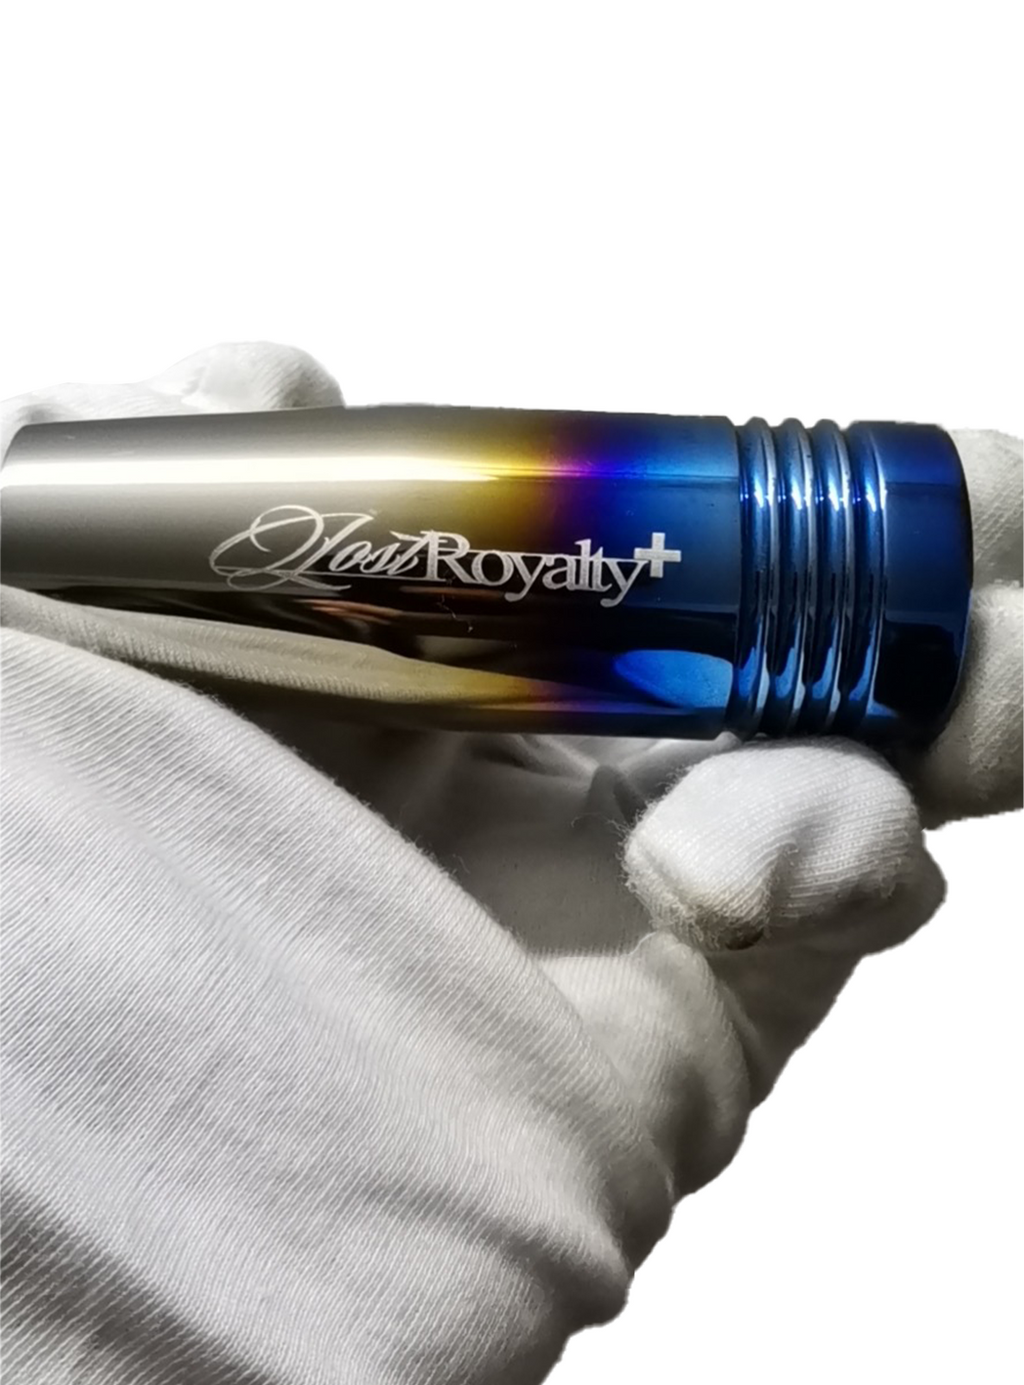 Lost Royalty Titanium Shift Knob V1 for MANUAL TRANS NISSAN / MITSUBISHI / MAZDA